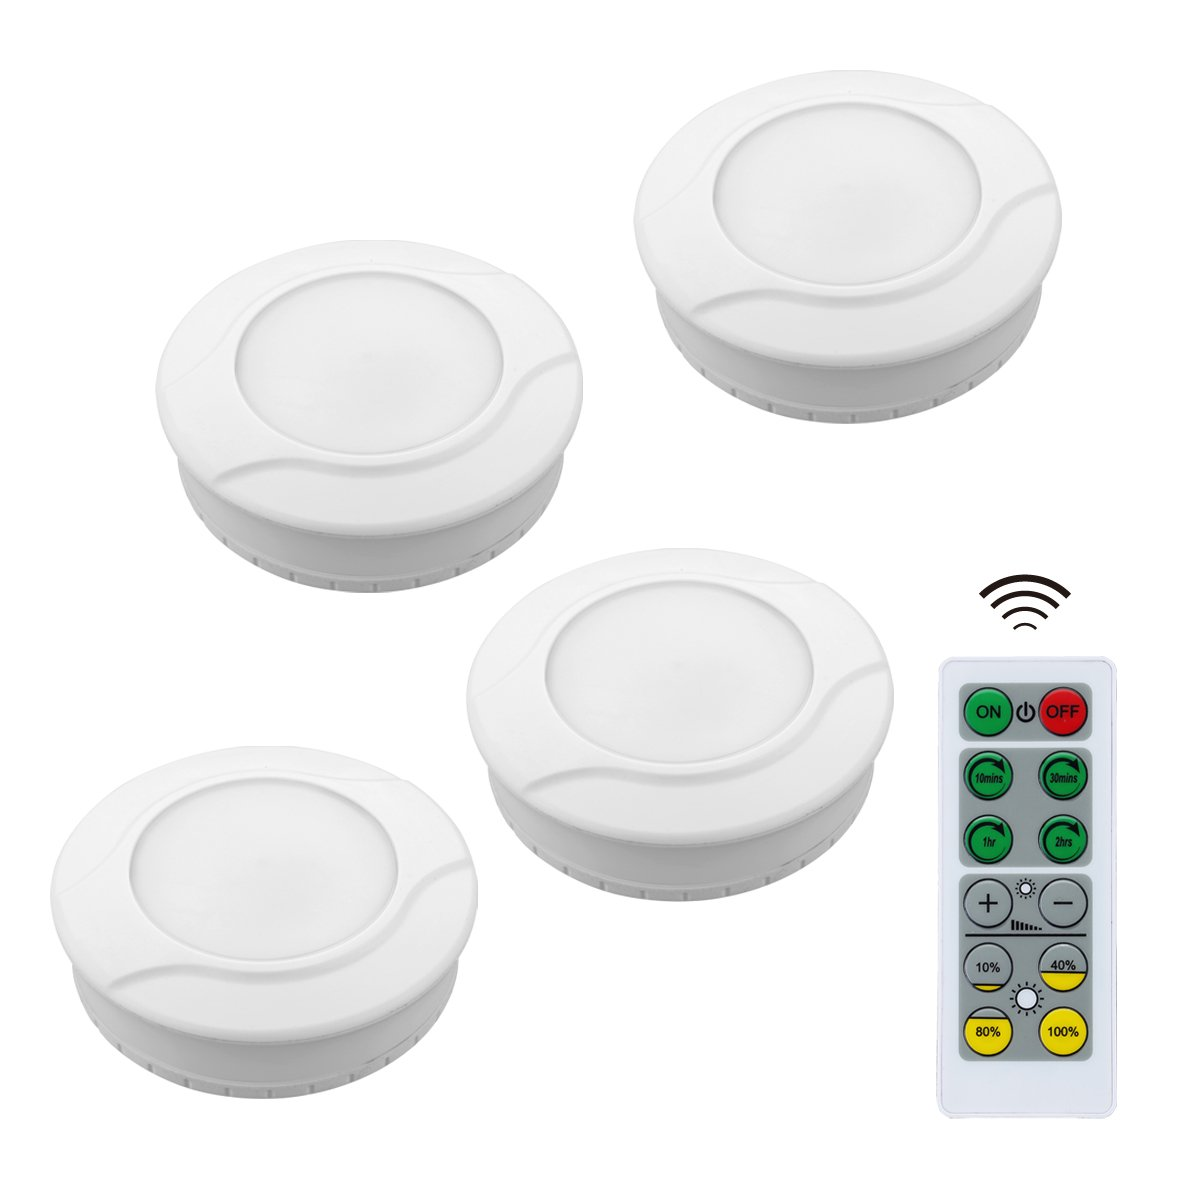 Link2Home EM-BL31W Wireless LED Battery Powered Dimmable Kitchen Under Cabinet Puck Lights with Remote Control, 4 Pack, White